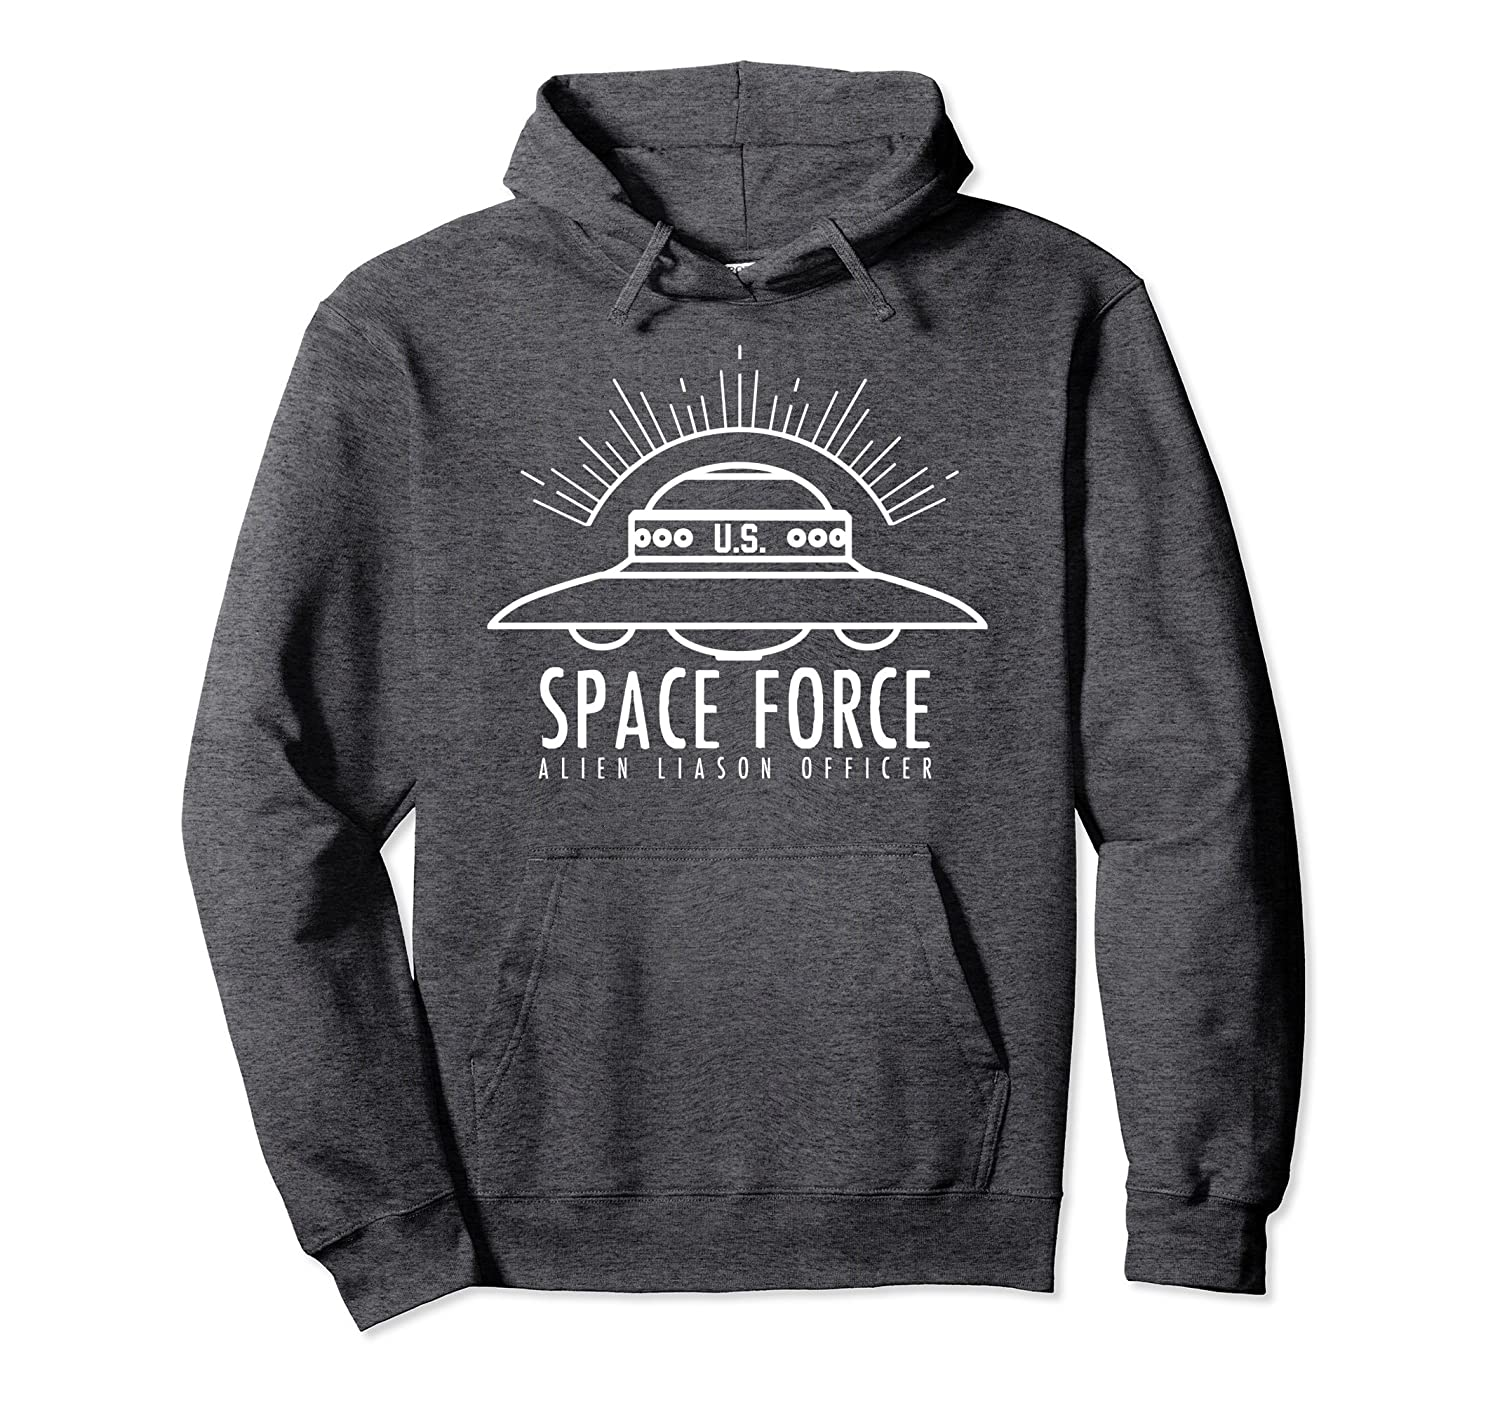 Space Force Hoodie Alien Aircraft Liaison Officer Division-mt